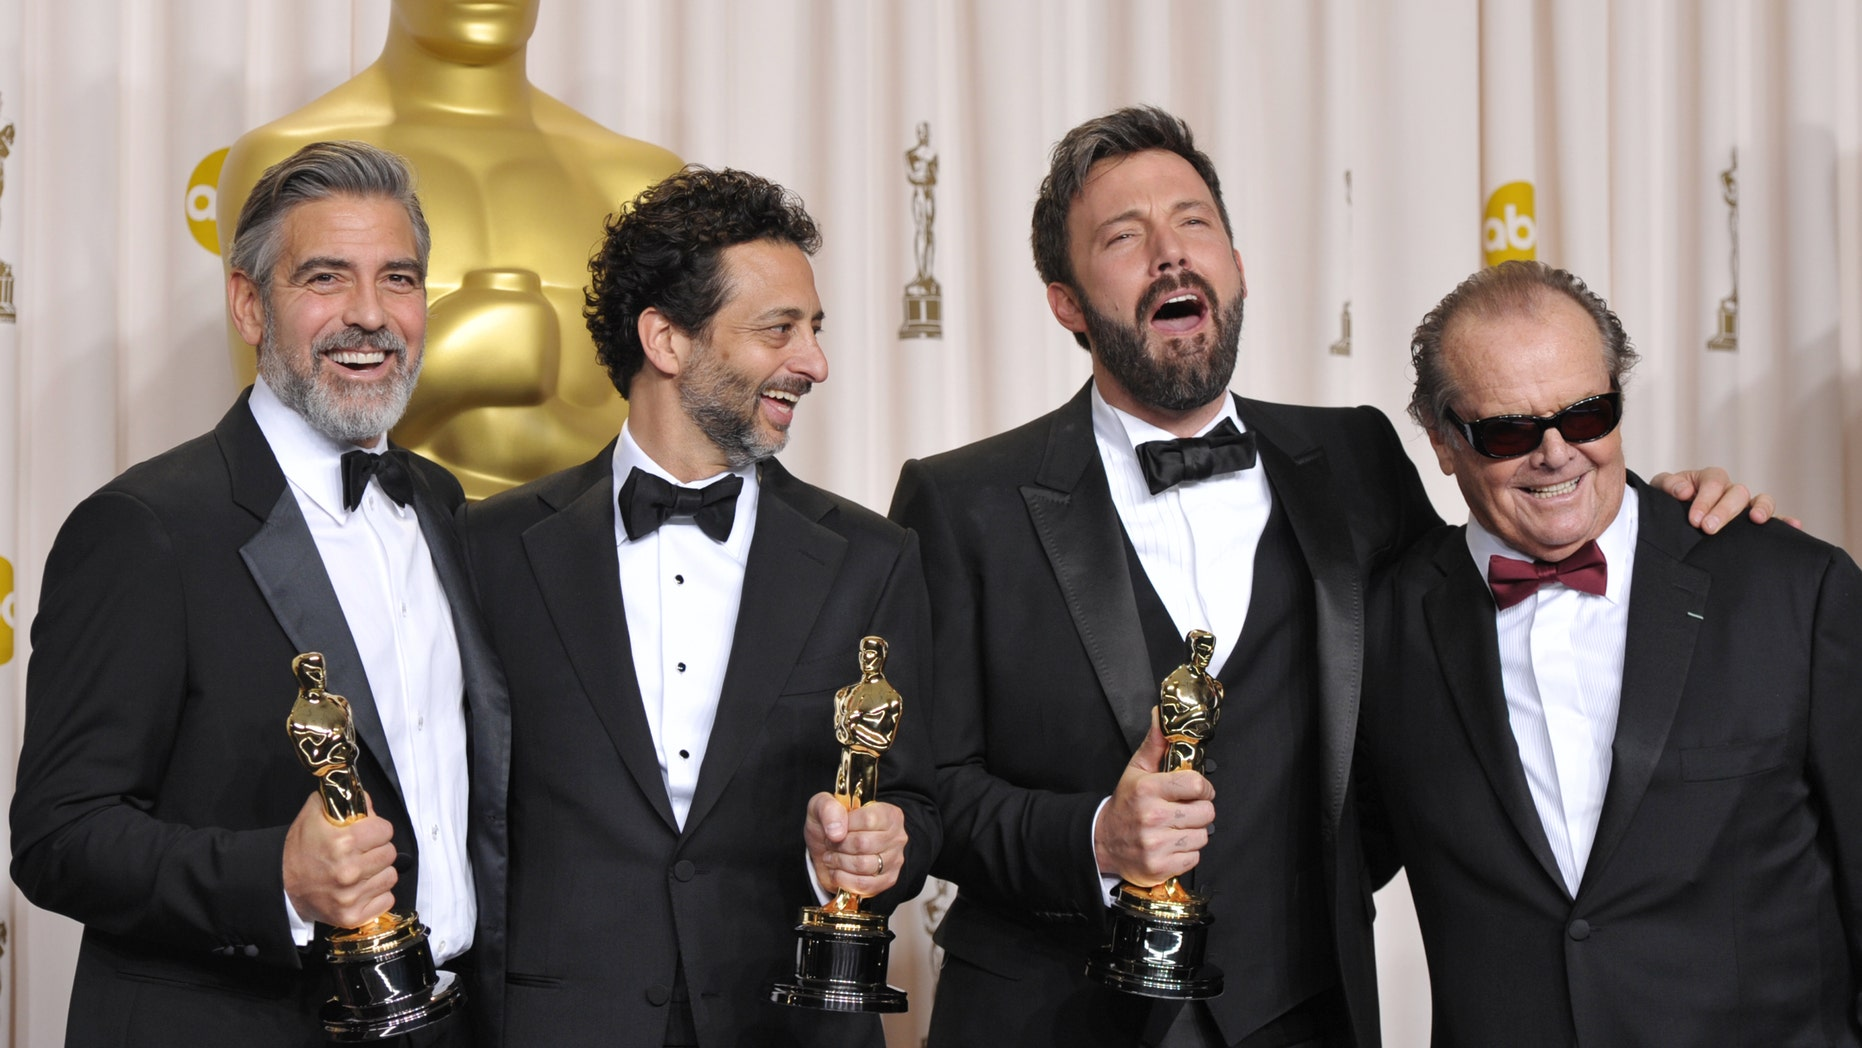 """George Clooney, from left, Grant Heslov, Ben Affleck pose with their award for best picture for """"Argo"""" pose with presenter Jack Nicholson, right, during the Oscars at the Dolby Theatre on Sunday Feb. 24, 2013, in Los Angeles. (Photo by John Shearer/Invision/AP)"""